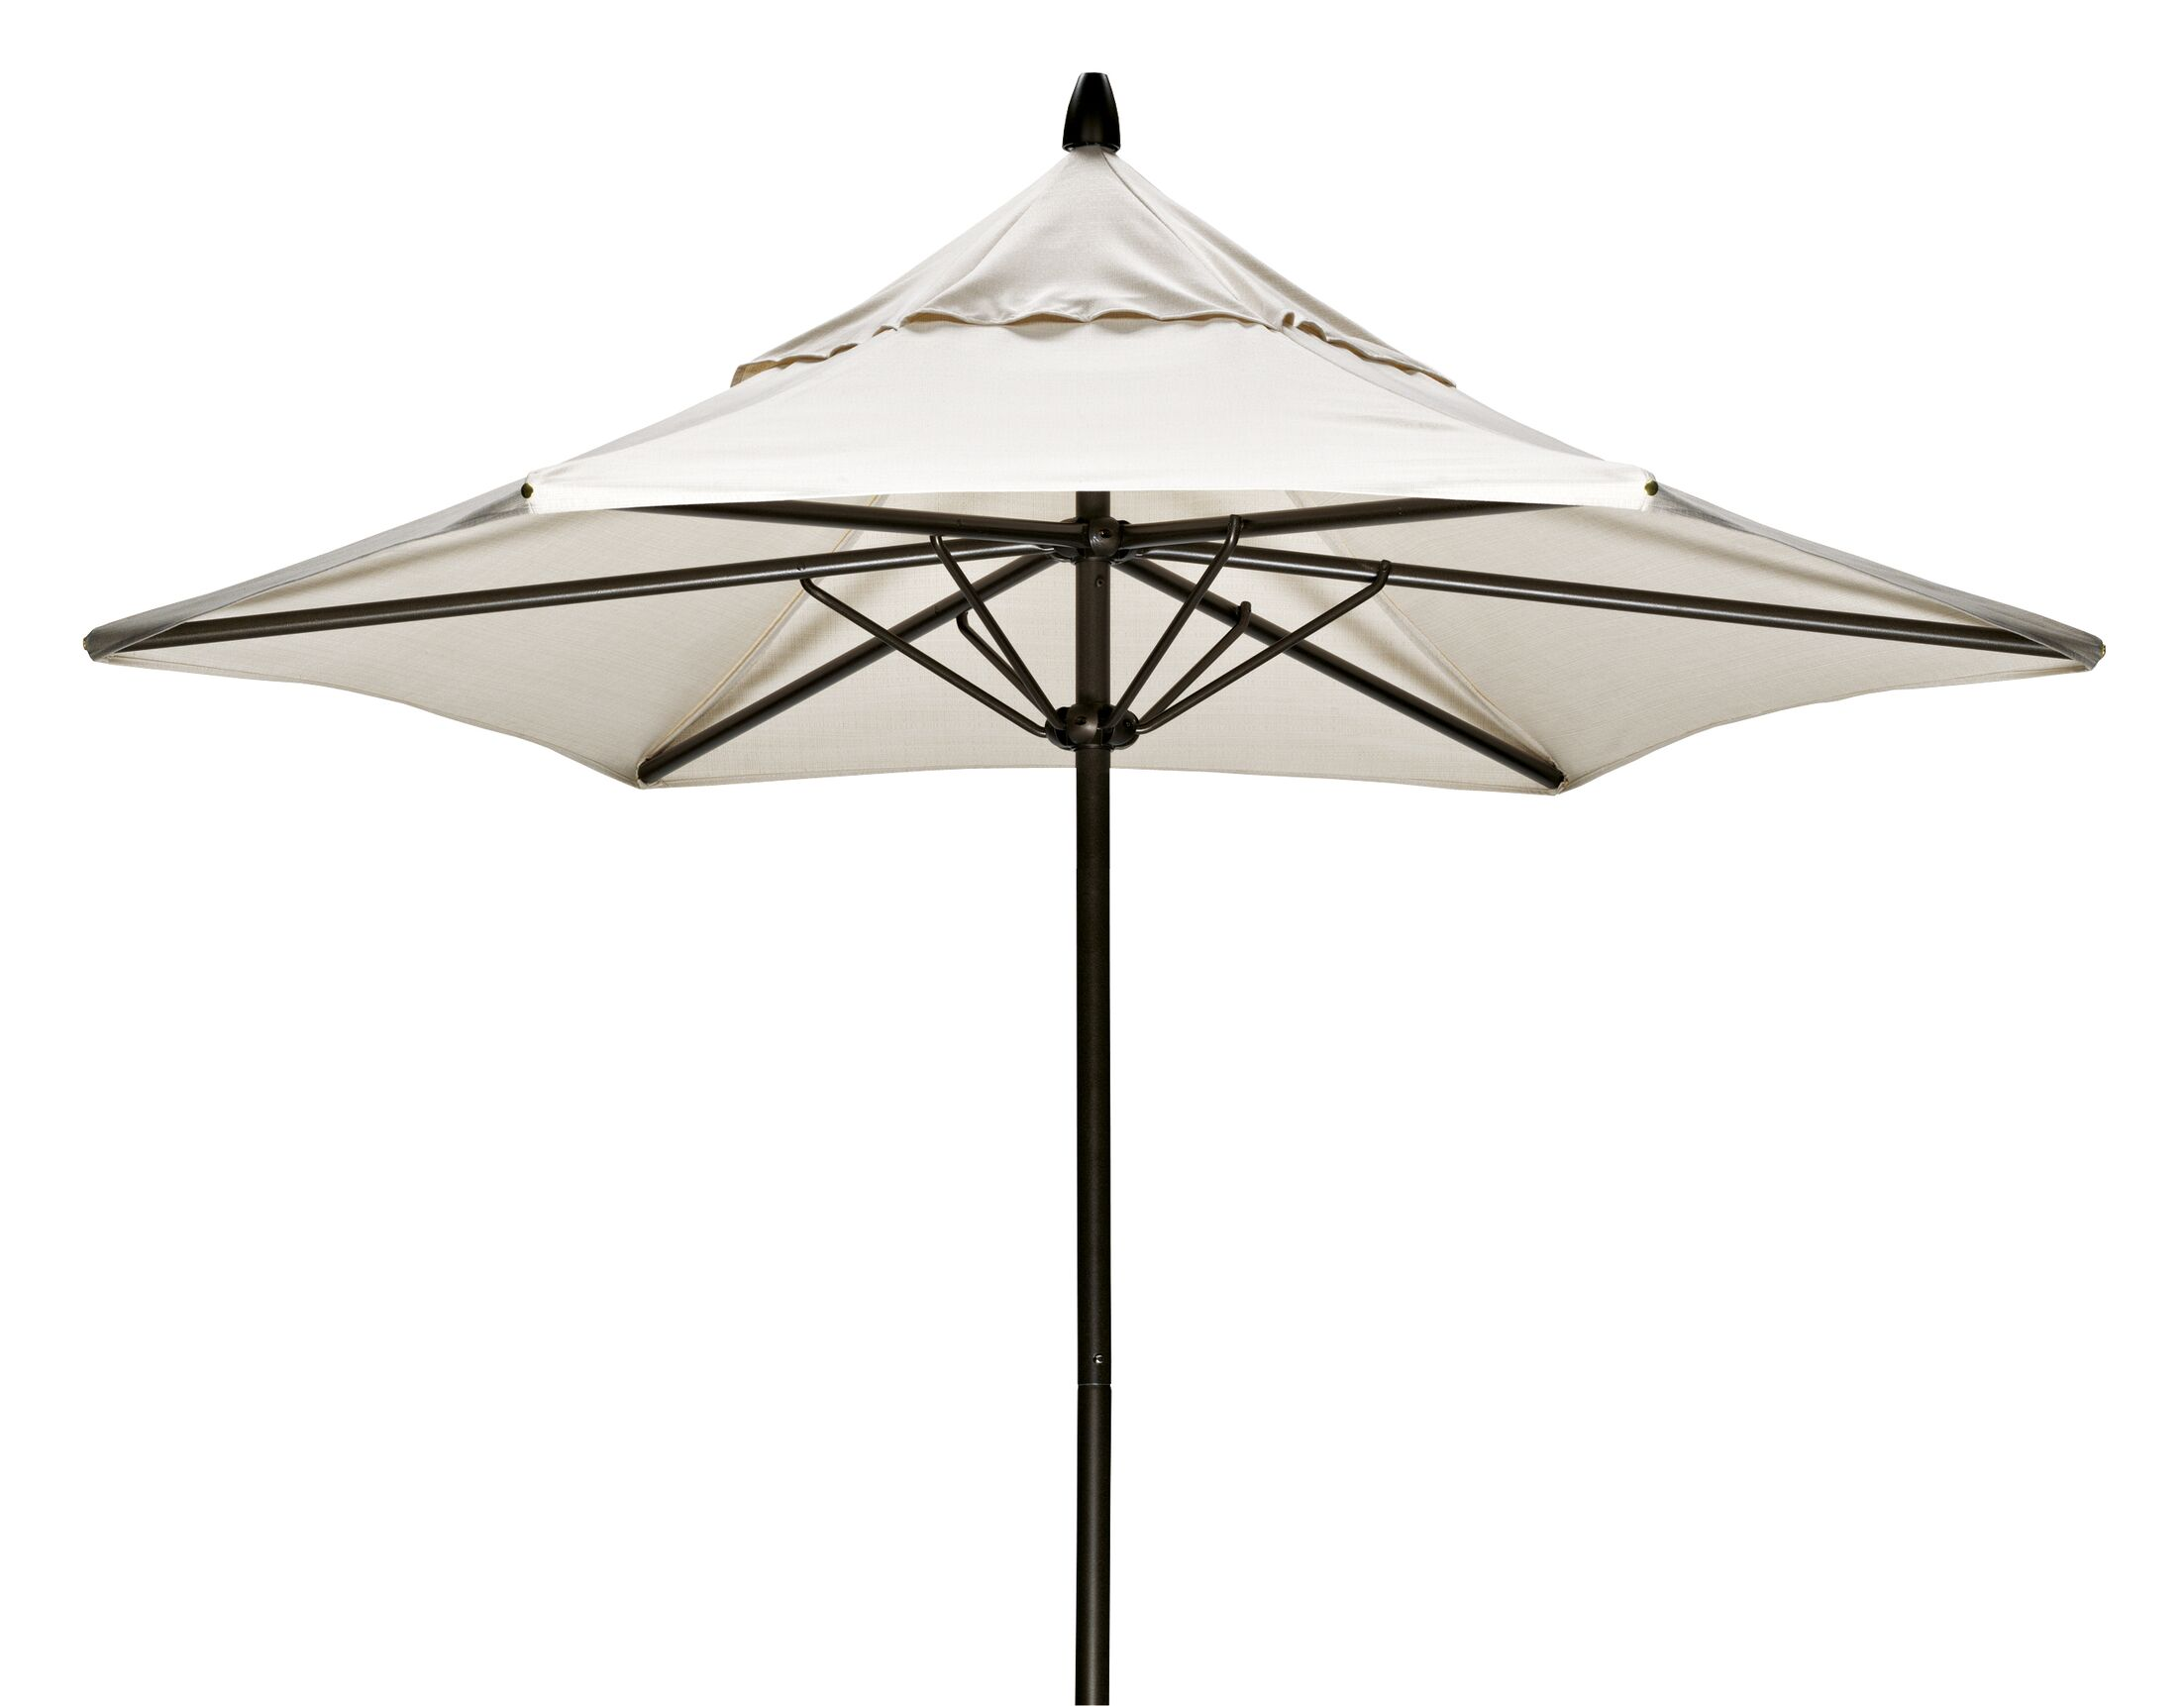 Commercial 7.5' Market Umbrella Frame Finish: Textured Aged Bronze, Fabric: Strickland